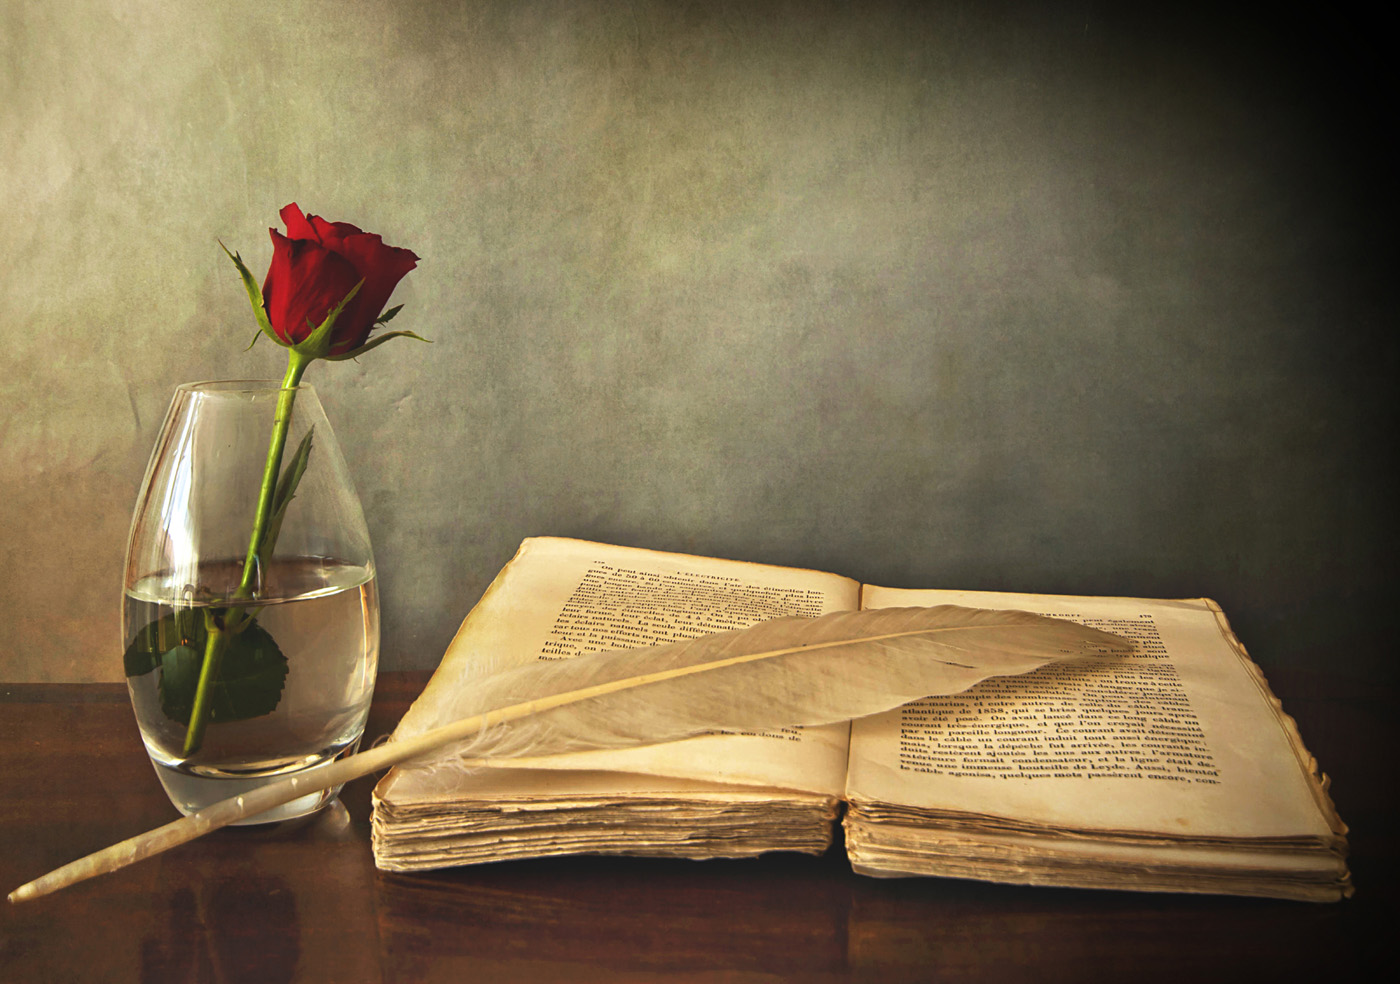 Old books and Roses 31480